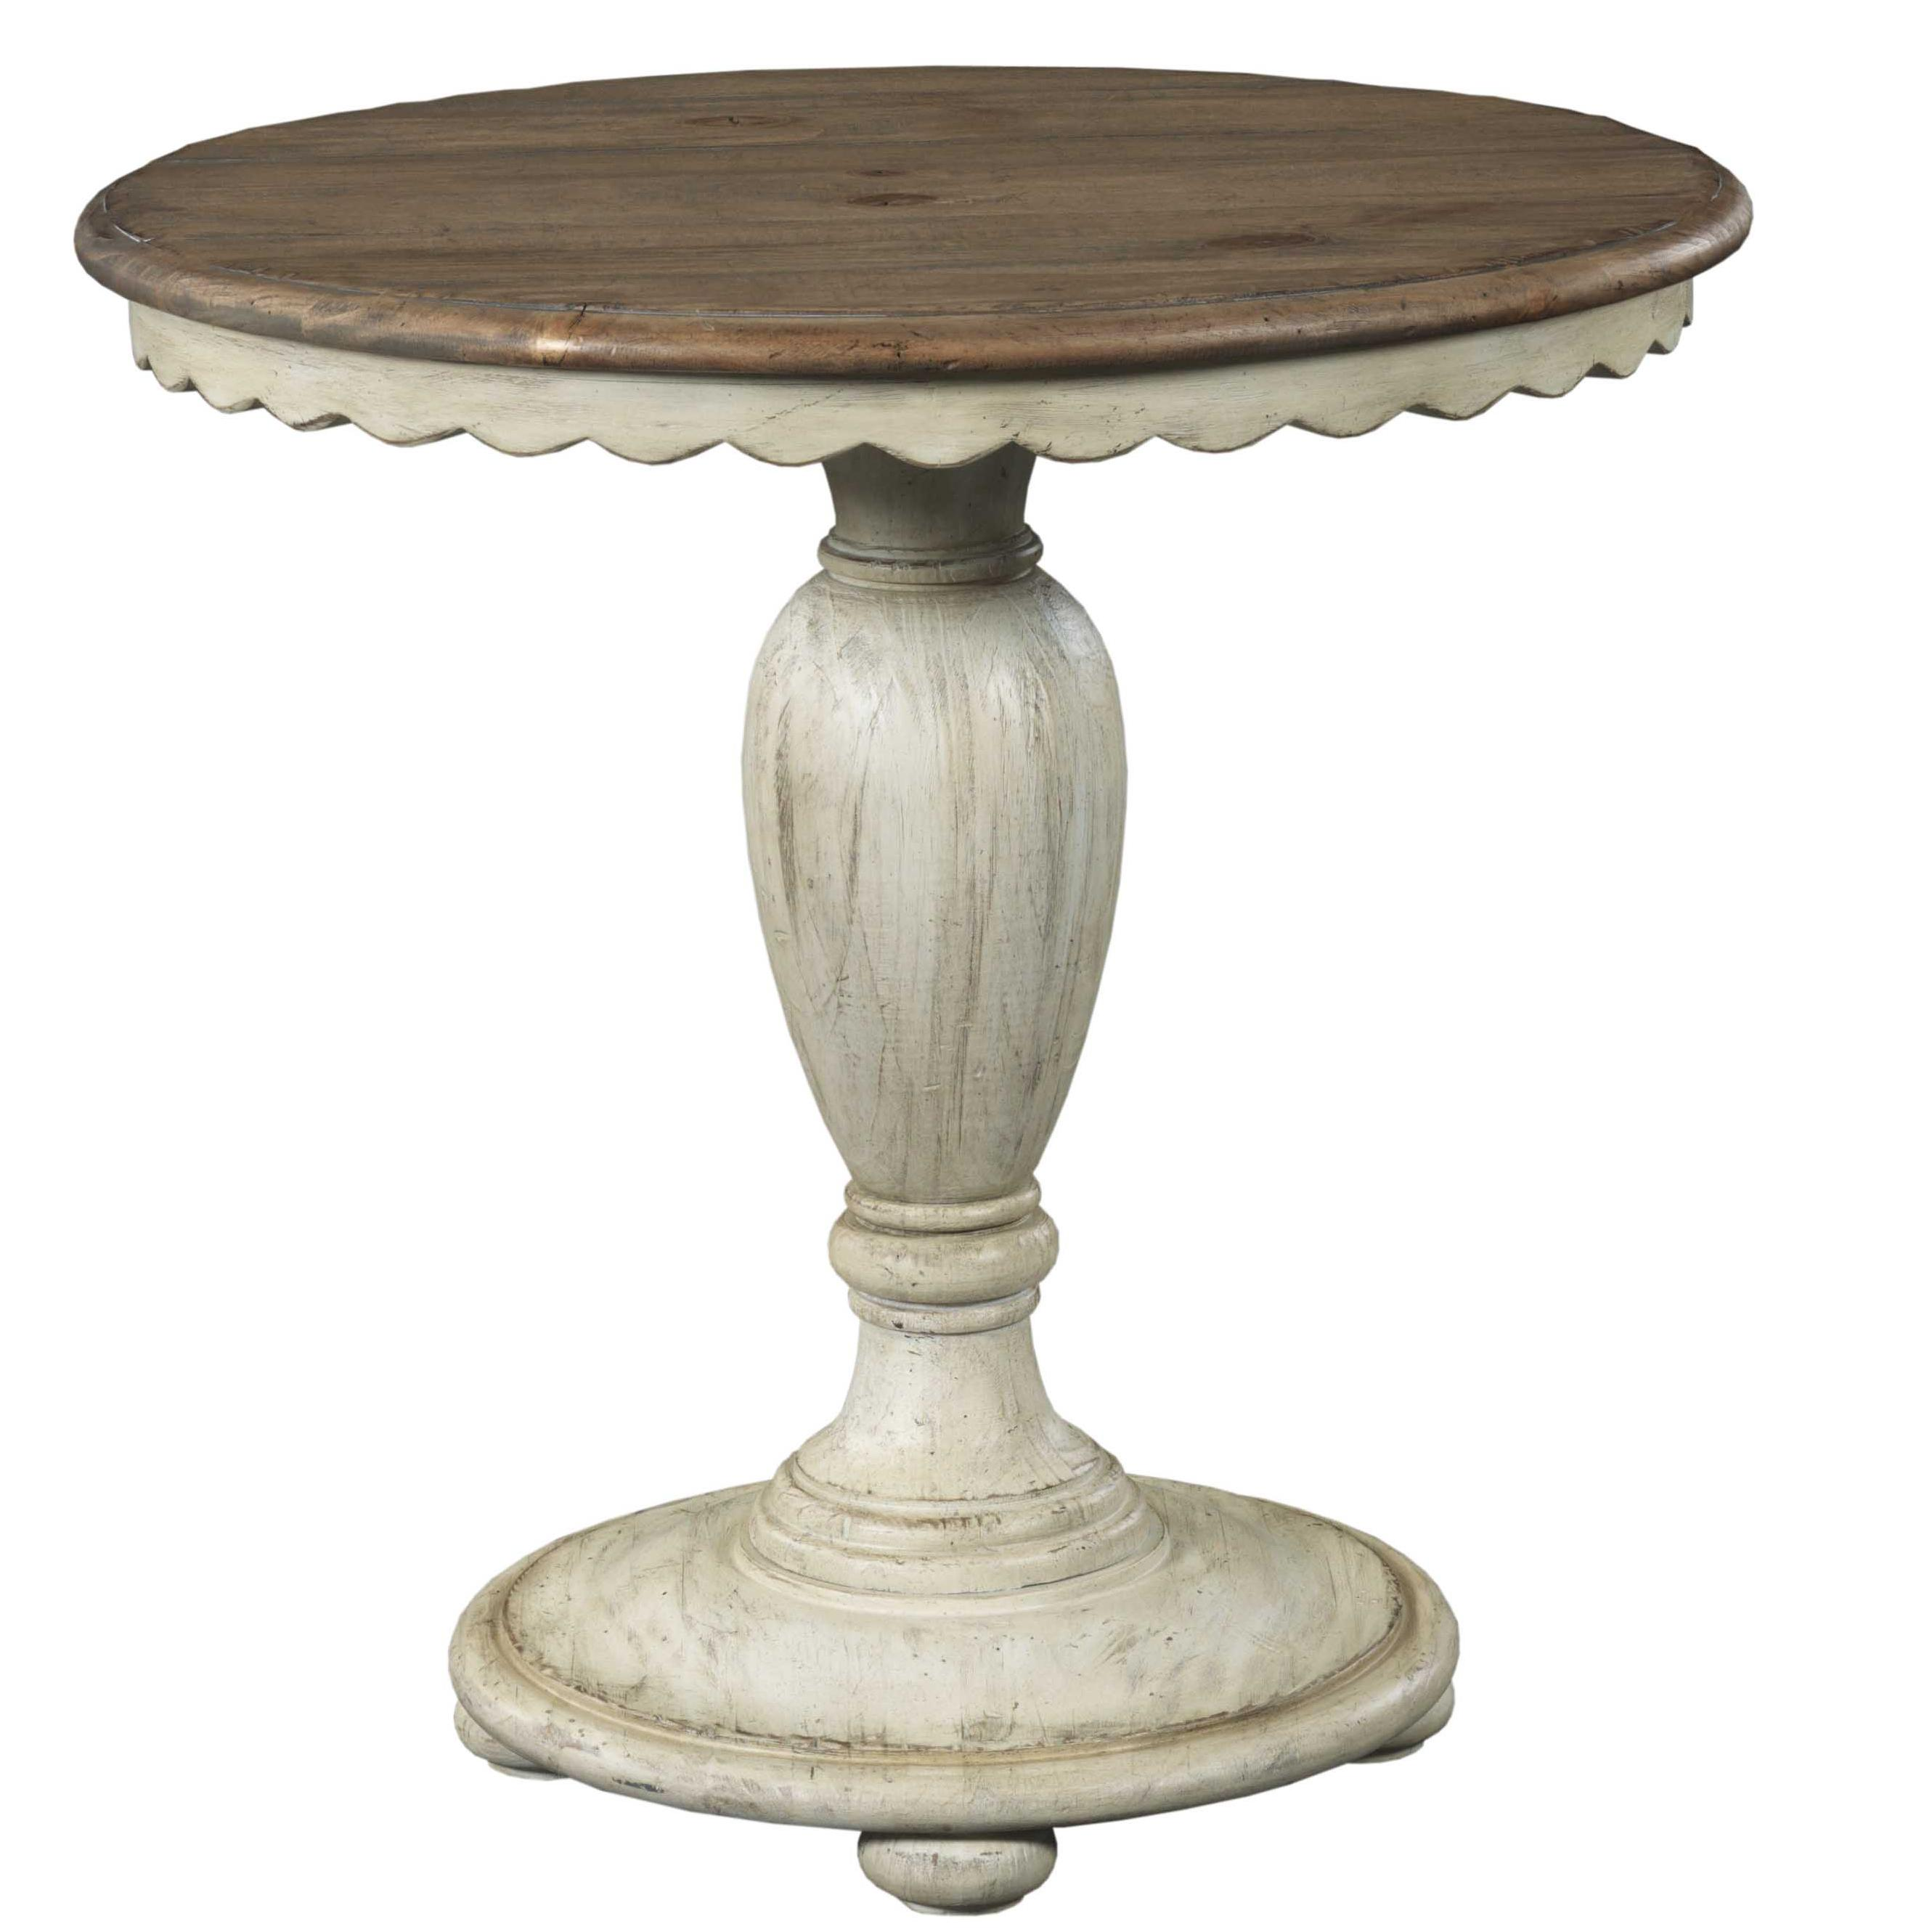 round accent table with scalloped edges kincaid furniture wolf products color weatherford cornsilk wood living room sofa tables canadian tire dining chairs wine storage cabinets